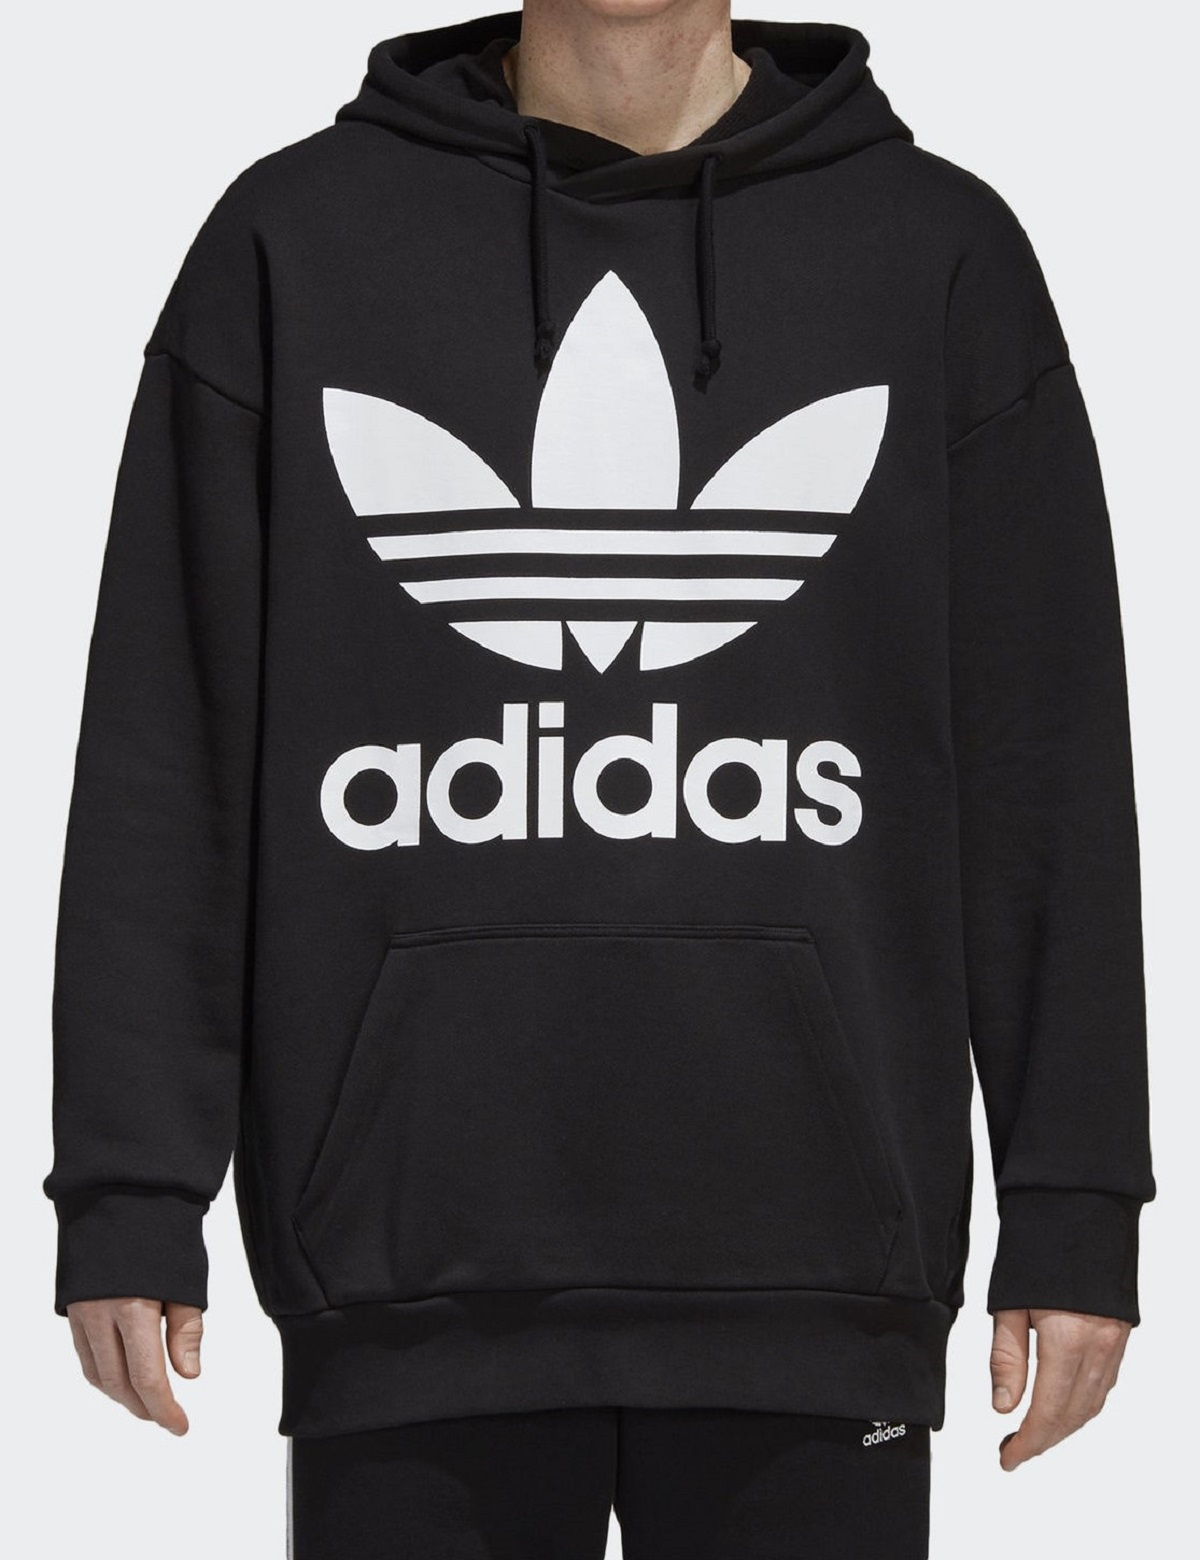 New Mens Adidas Original Mens Trefoil Fleece Hoodie Hooded Sweatshirt  Pullover Jumper Black f10a22b0f